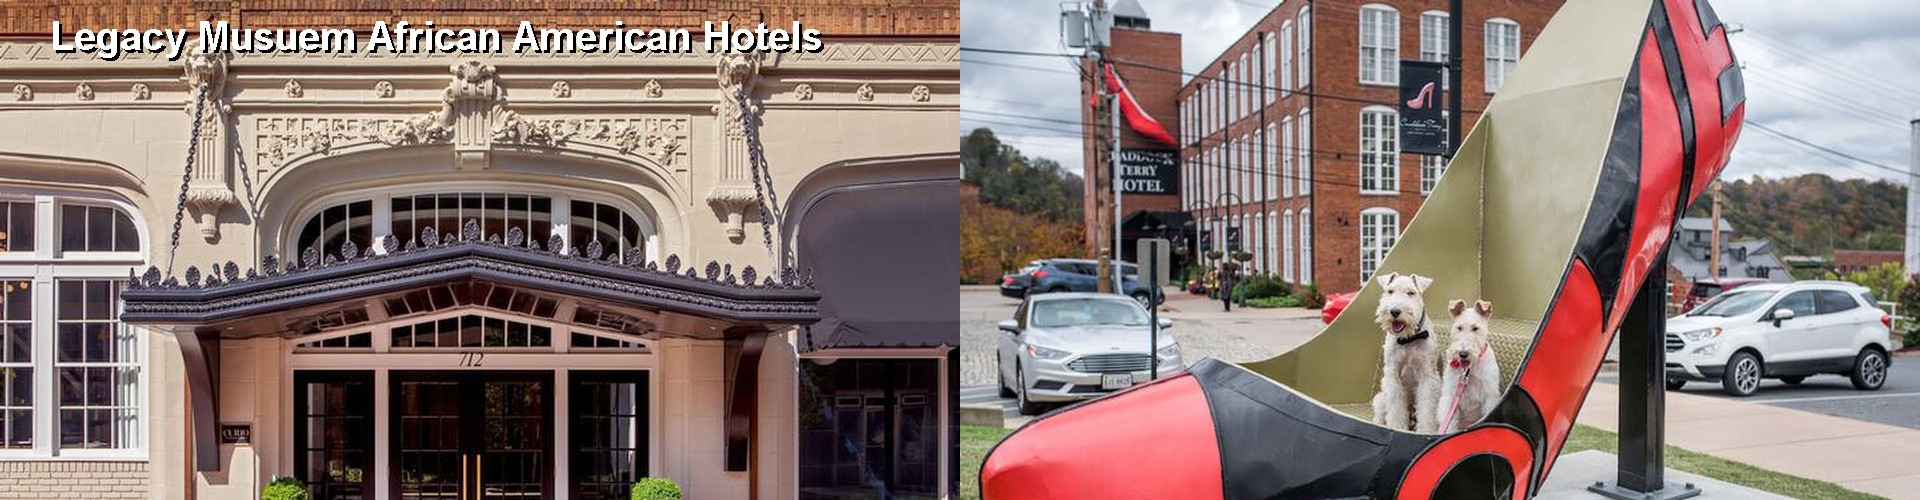 5 Best Hotels near Legacy Musuem African American